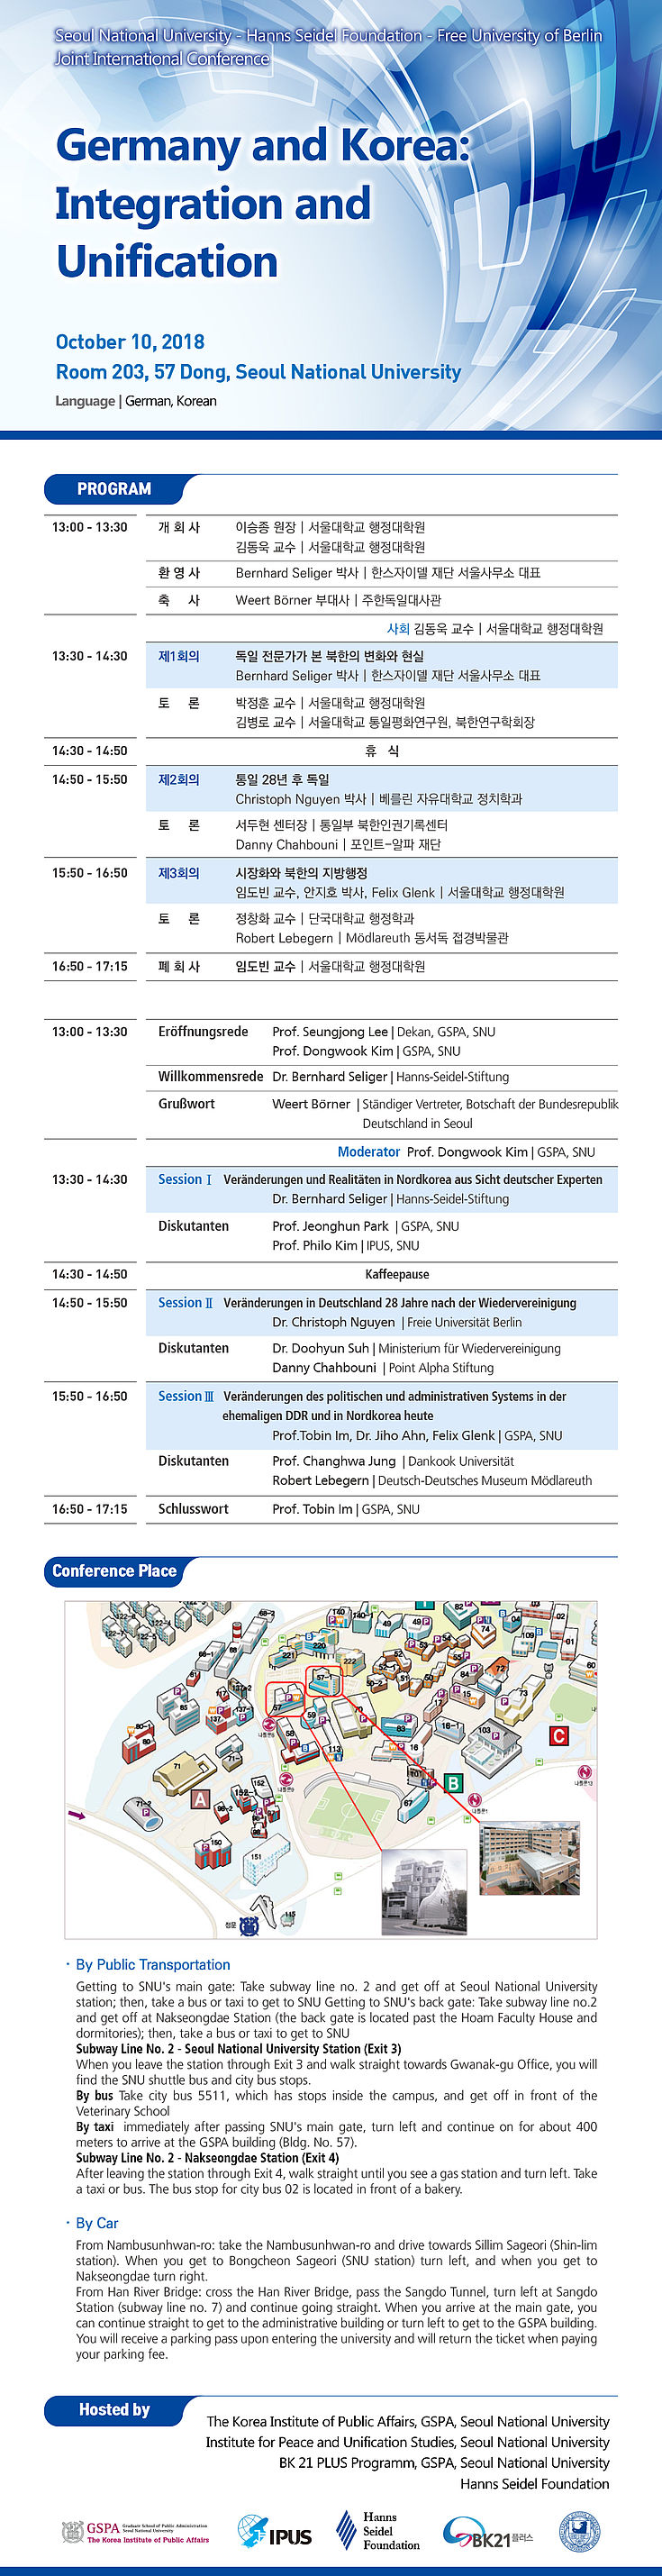 "Programm der Konferenz ""Germany and Korea: Integration and Unification"""